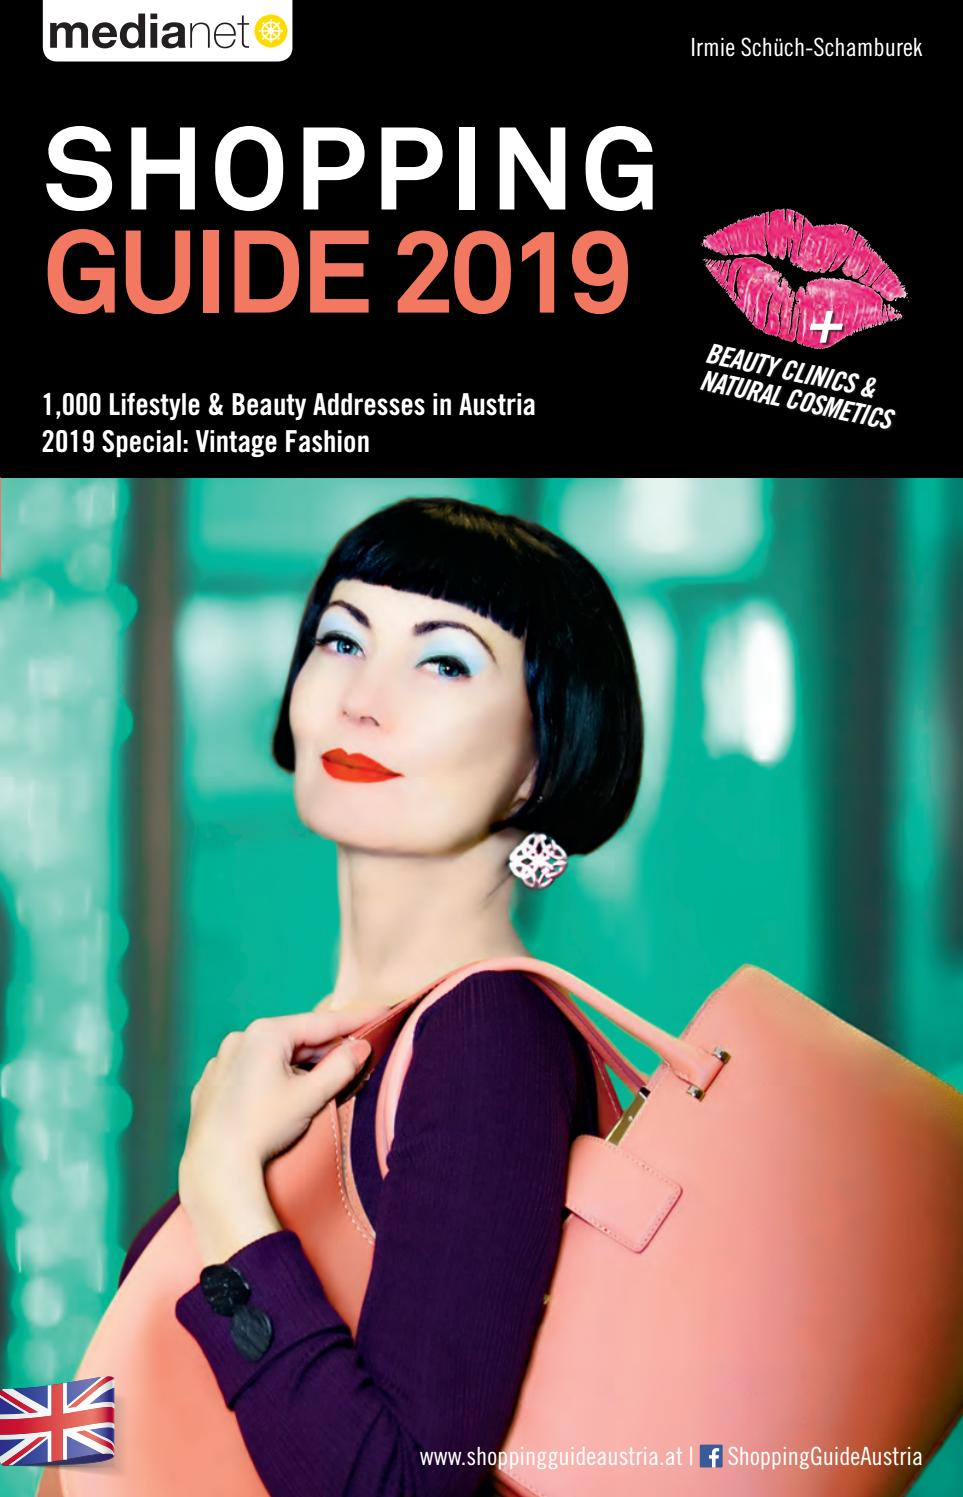 Shopping Guide 2015 by medianet issuu